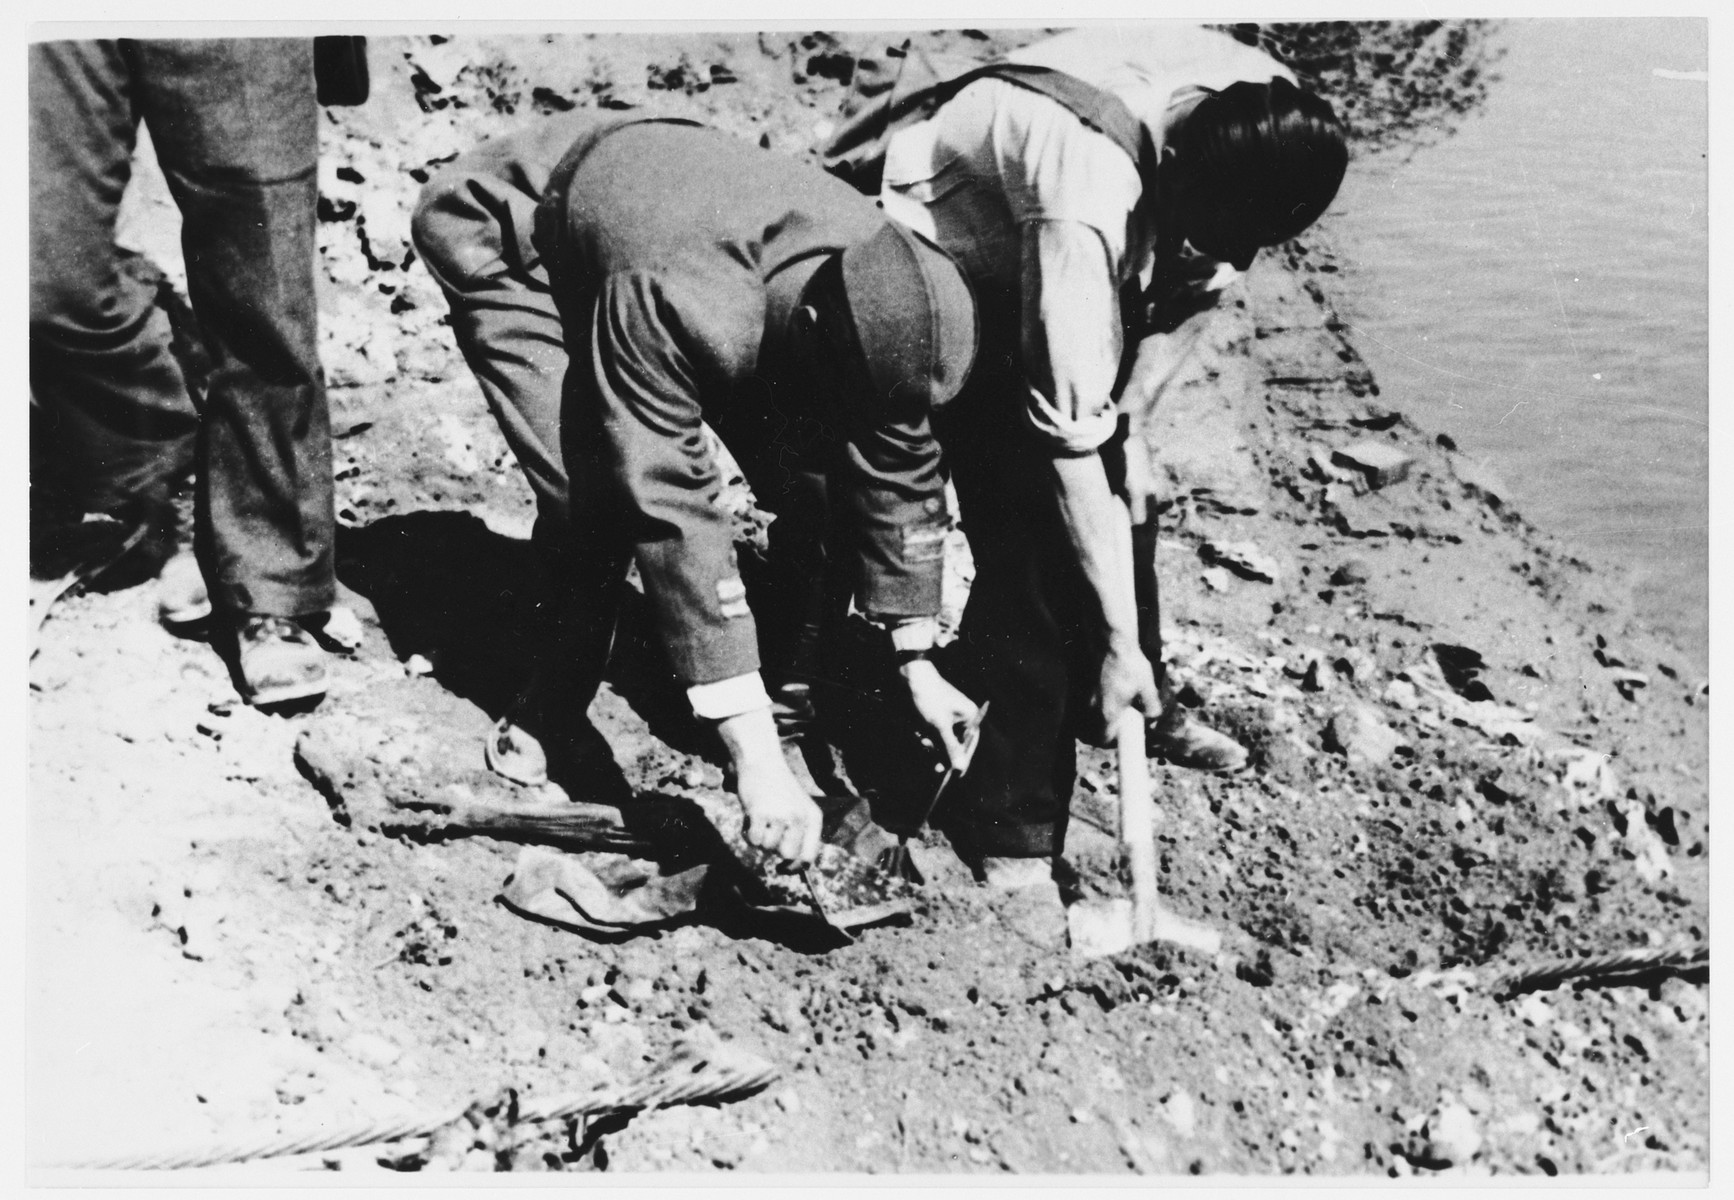 Members of the first Yugoslav war crimes commission investigating atrocities at the Jasenovac concentration camp, collect evidence on the banks of the Sava River.